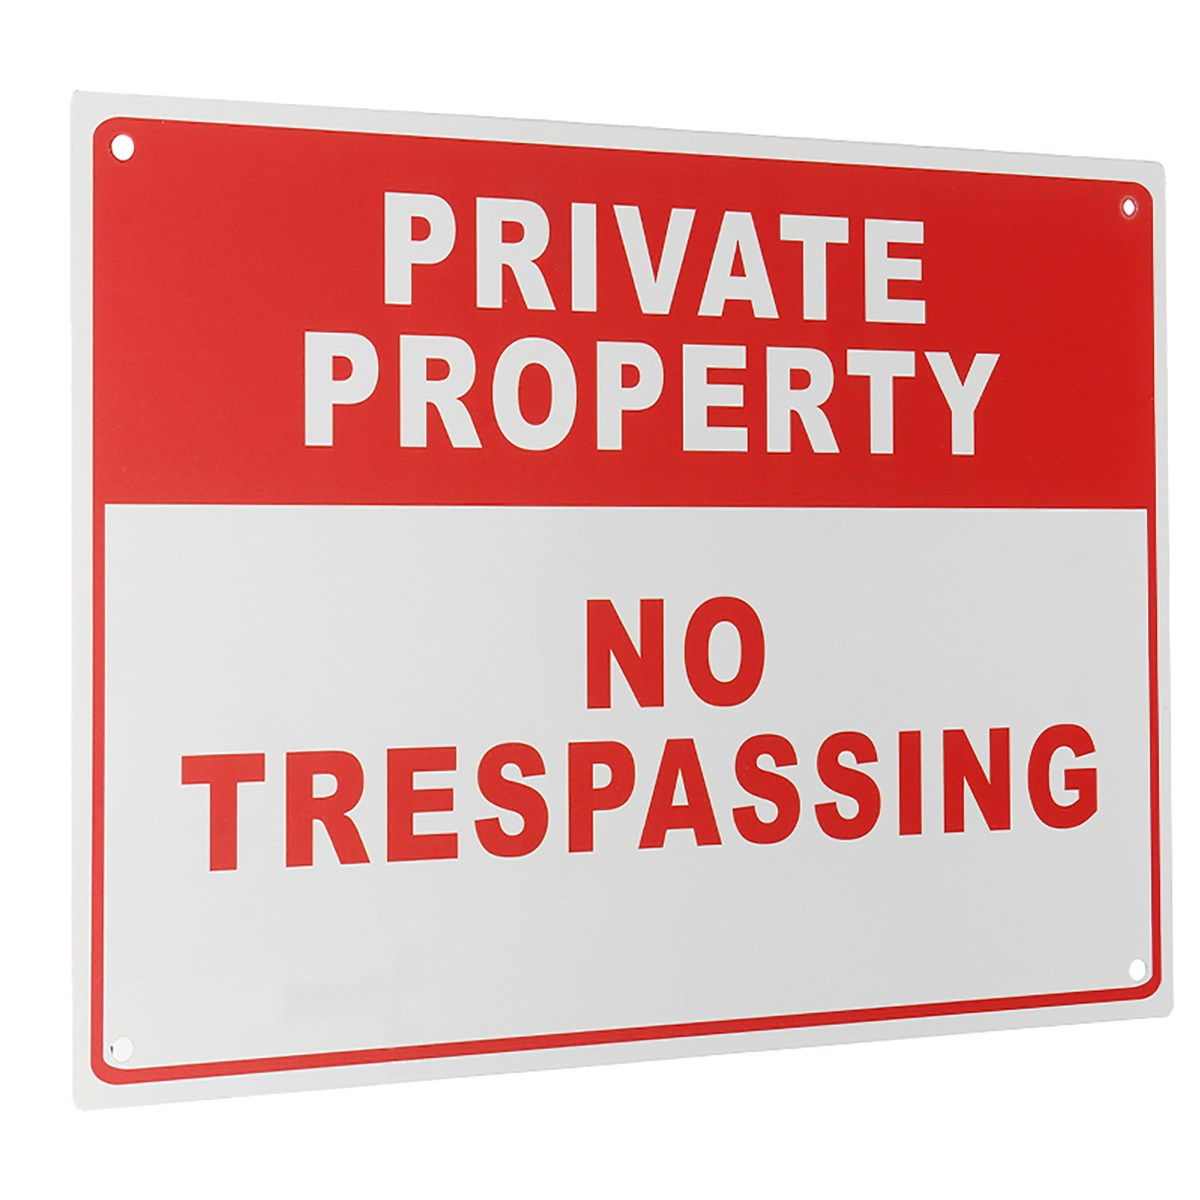 NEW Safurance Private Property No Trespassing Metal Safety Warning Sign 4 Drilled Hole 20x30cm Home Security